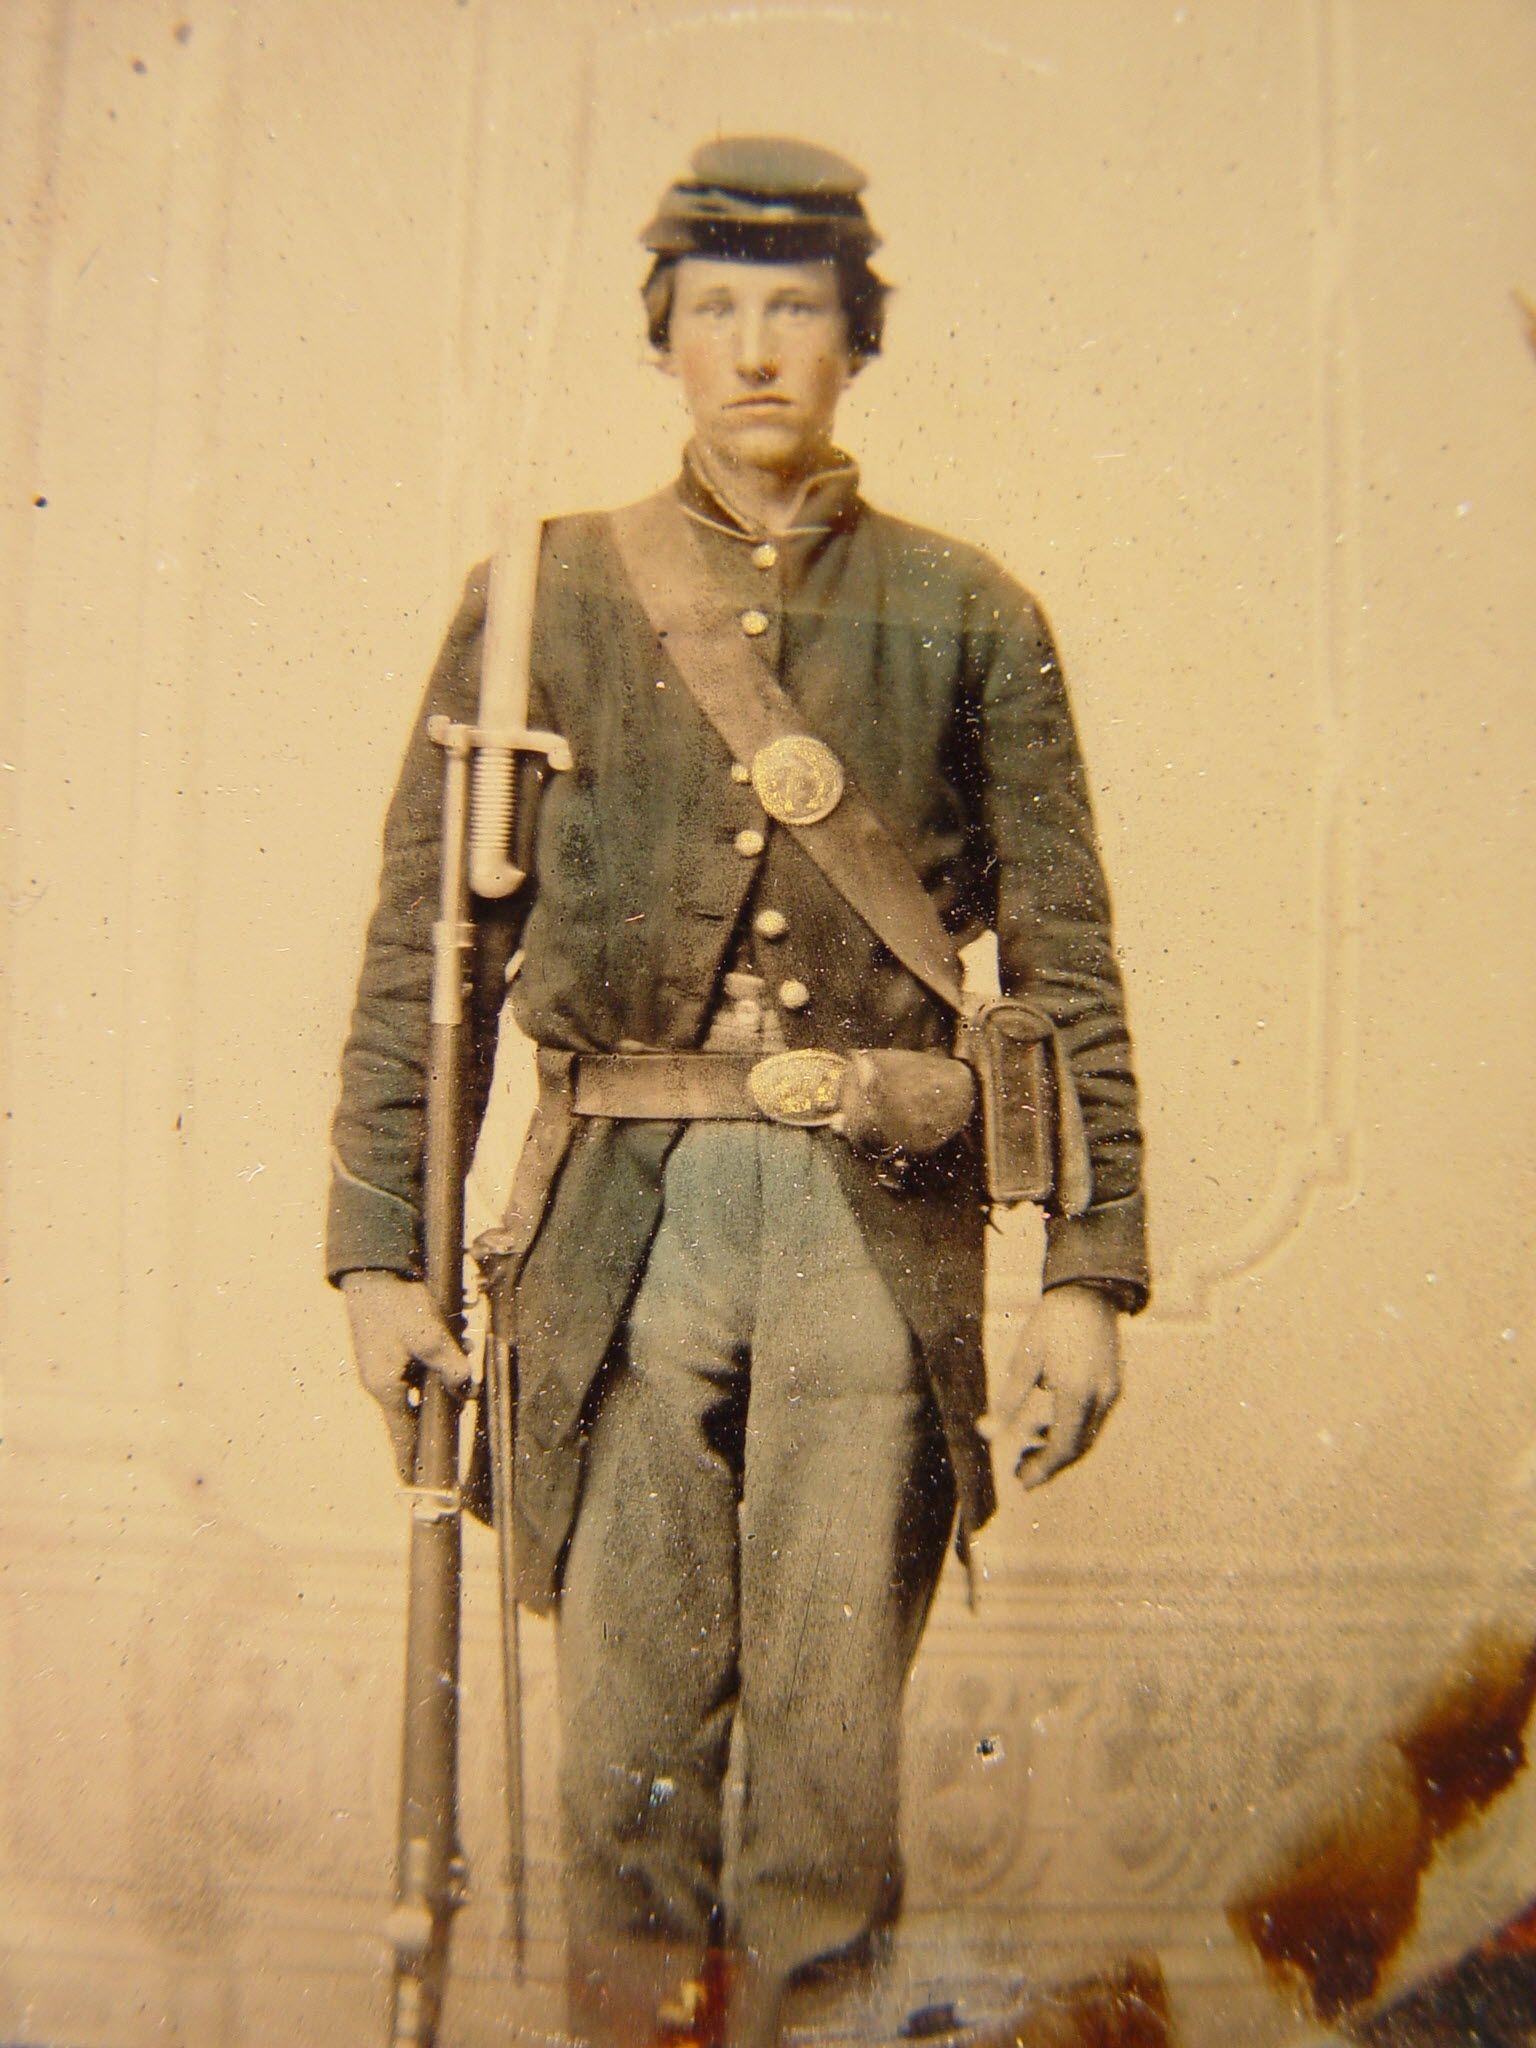 Unidentified Sol R In Union Uniform With Musket U S Model Zouave Bayonet Cartridge Box